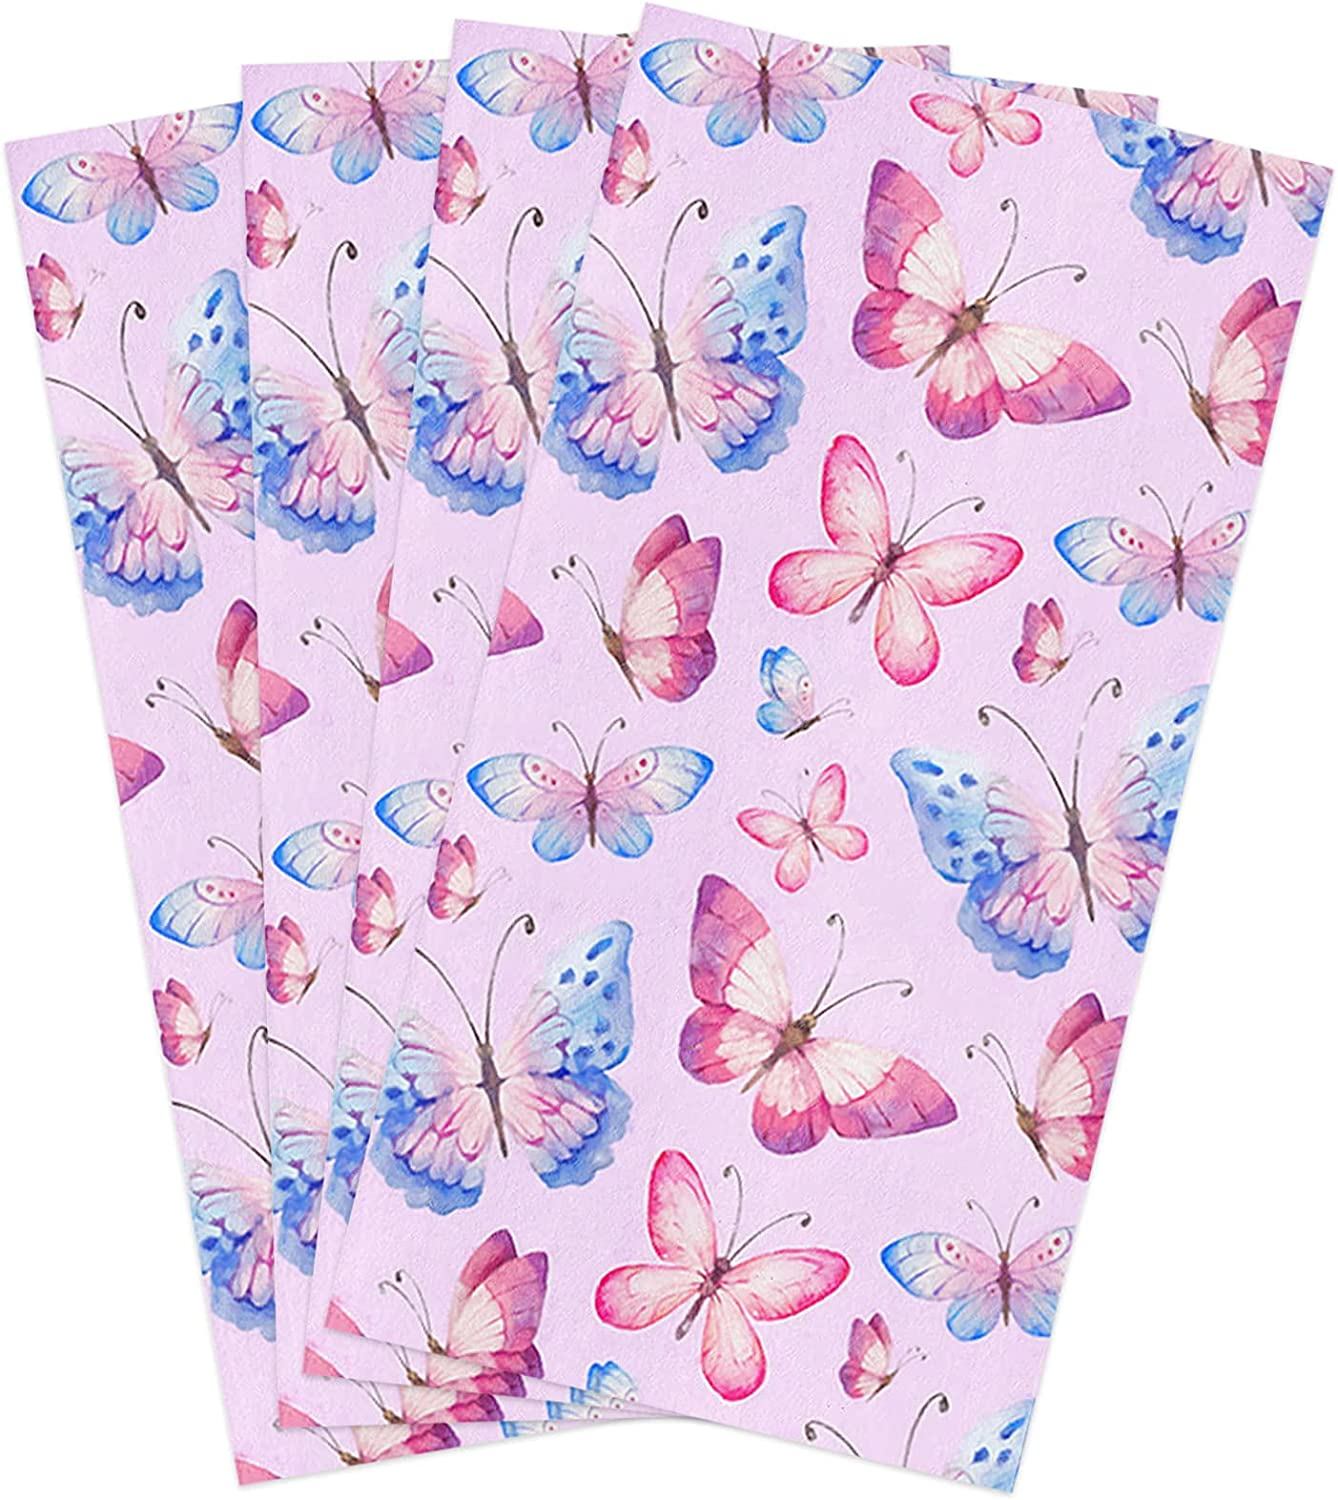 Zadaling 代引き不可 Kitchen Towels Butterfly Watercolor Inches 全店販売中 Soft D 18x28